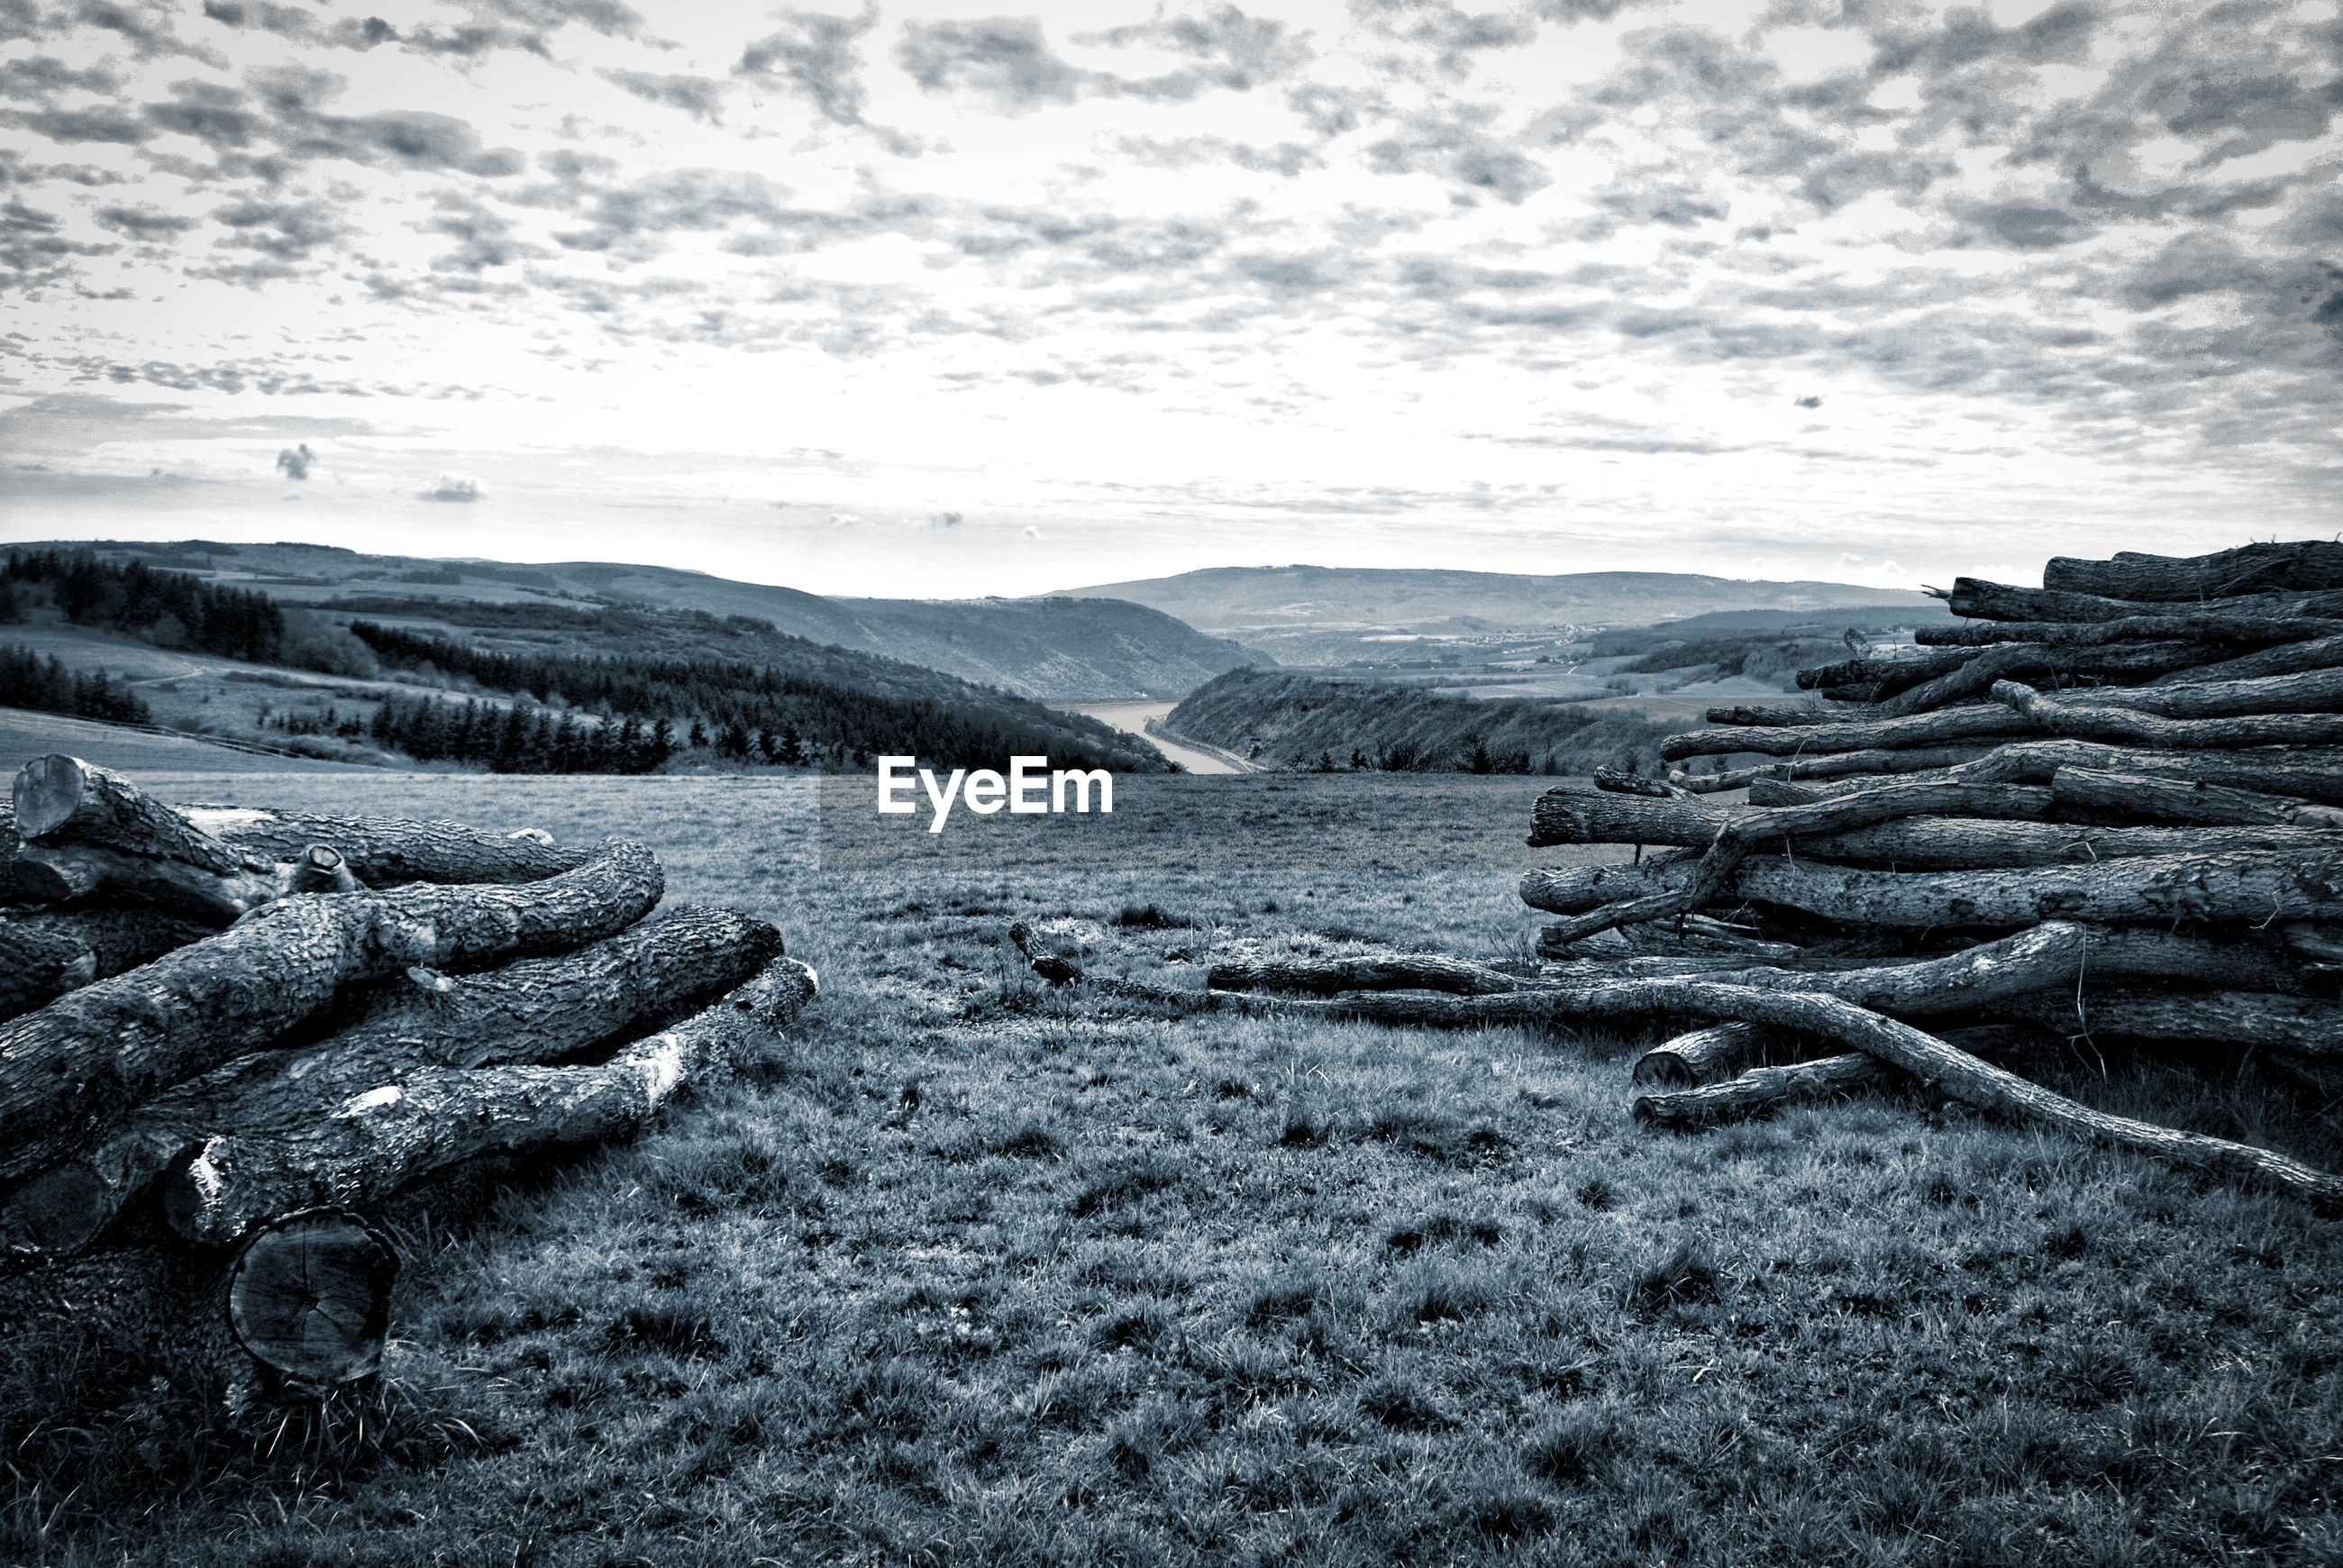 Wooden log on ground with mountain in background